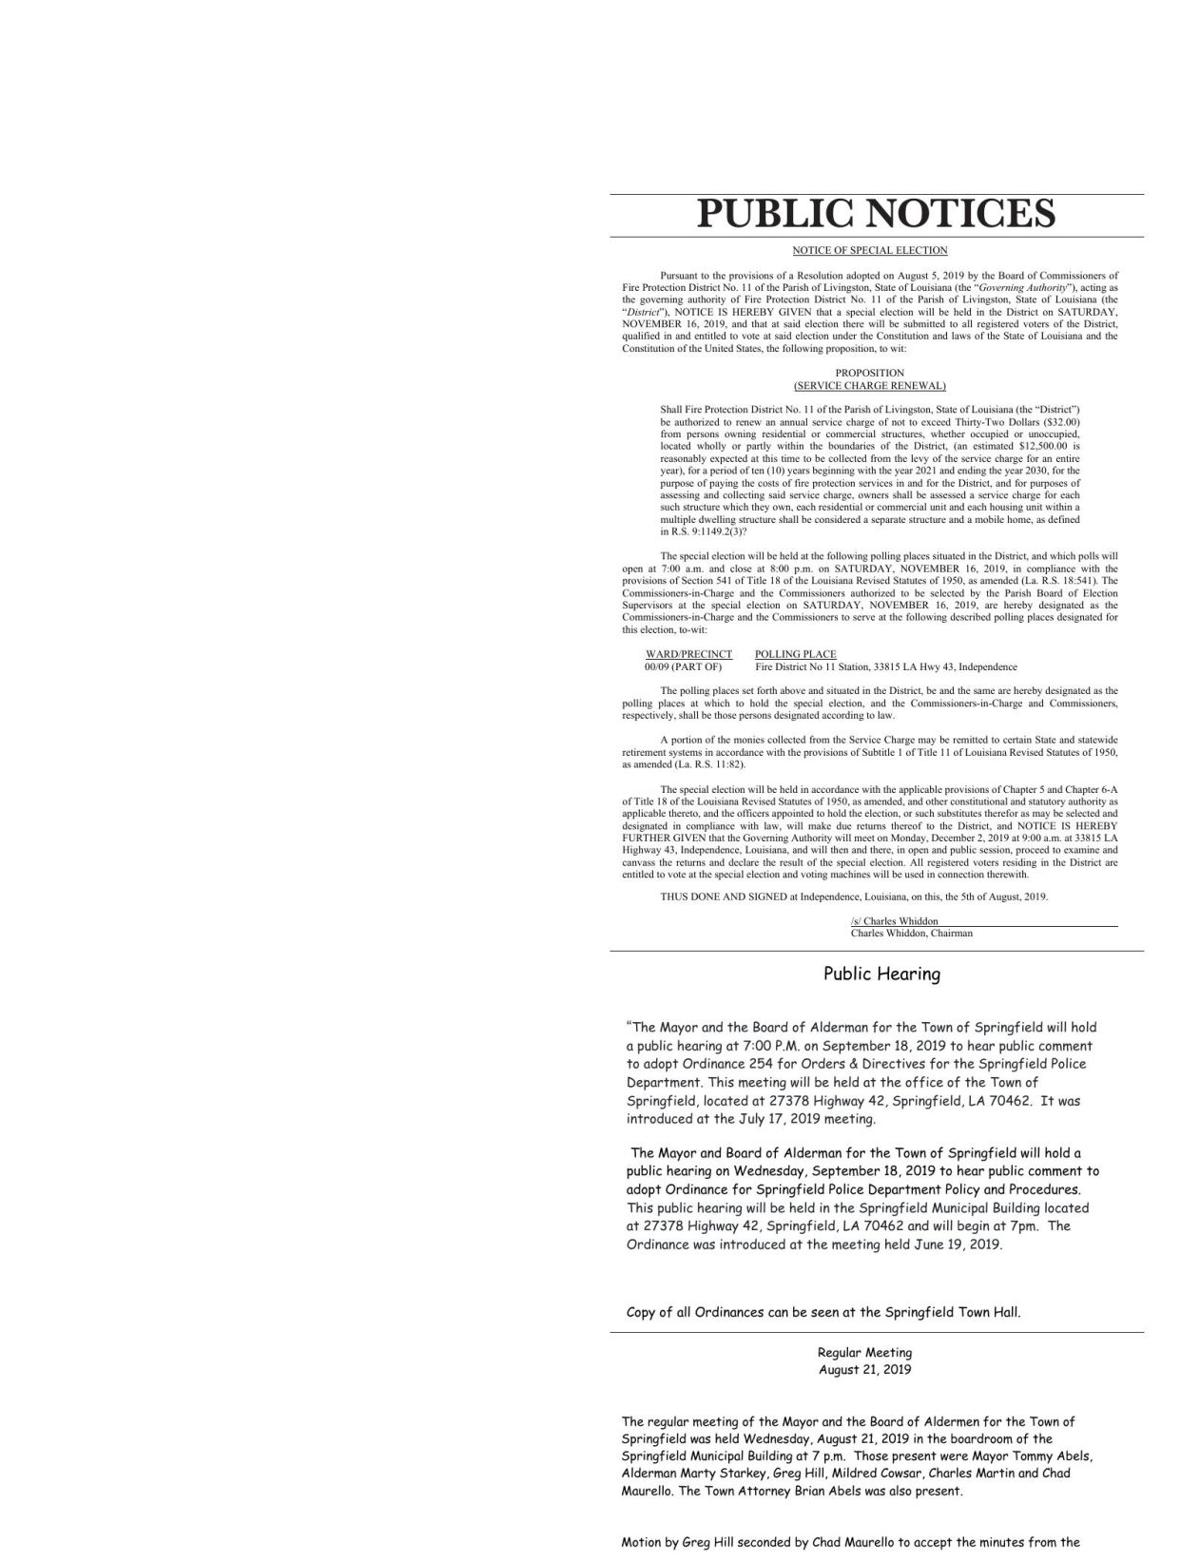 Public Notices published September 12, 2019